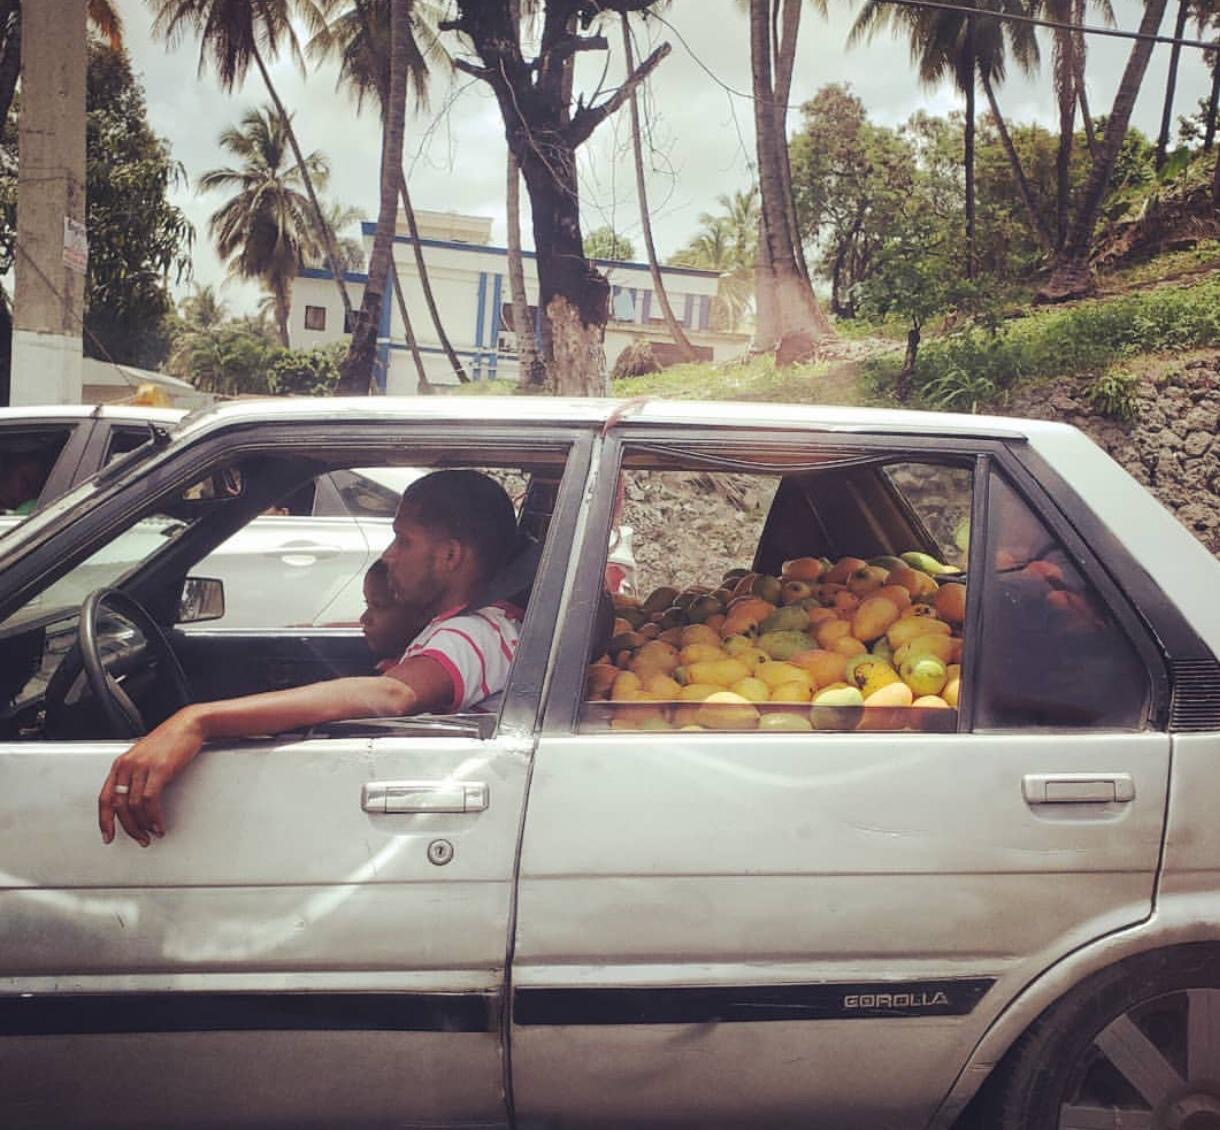 Mango vendor in the Dominican Republic